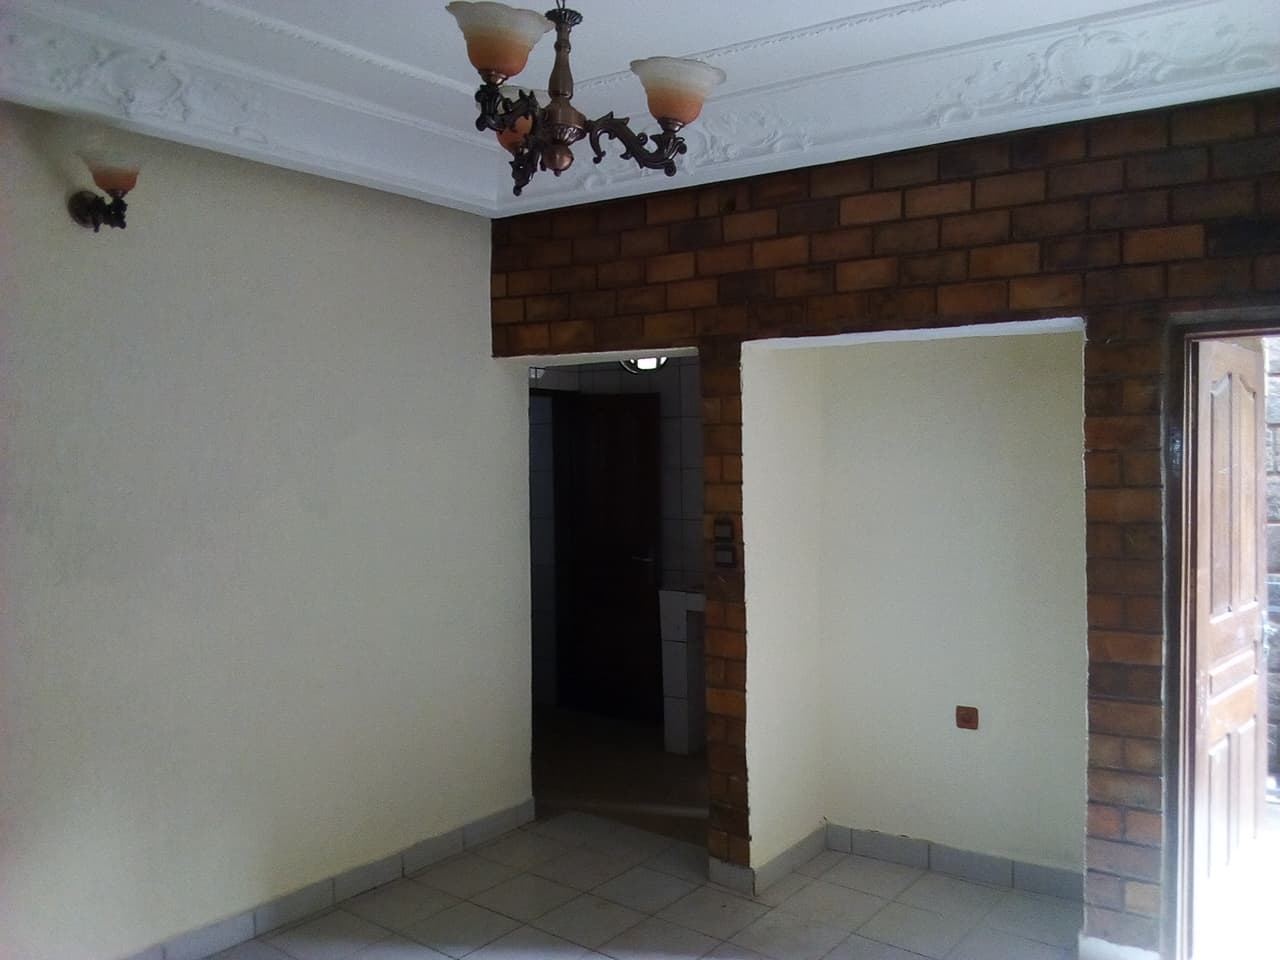 Apartment to rent - Yaoundé, Bastos, pas loin du carrefour du palis - 1 living room(s), 1 bedroom(s), 1 bathroom(s) - 165 000 FCFA / month